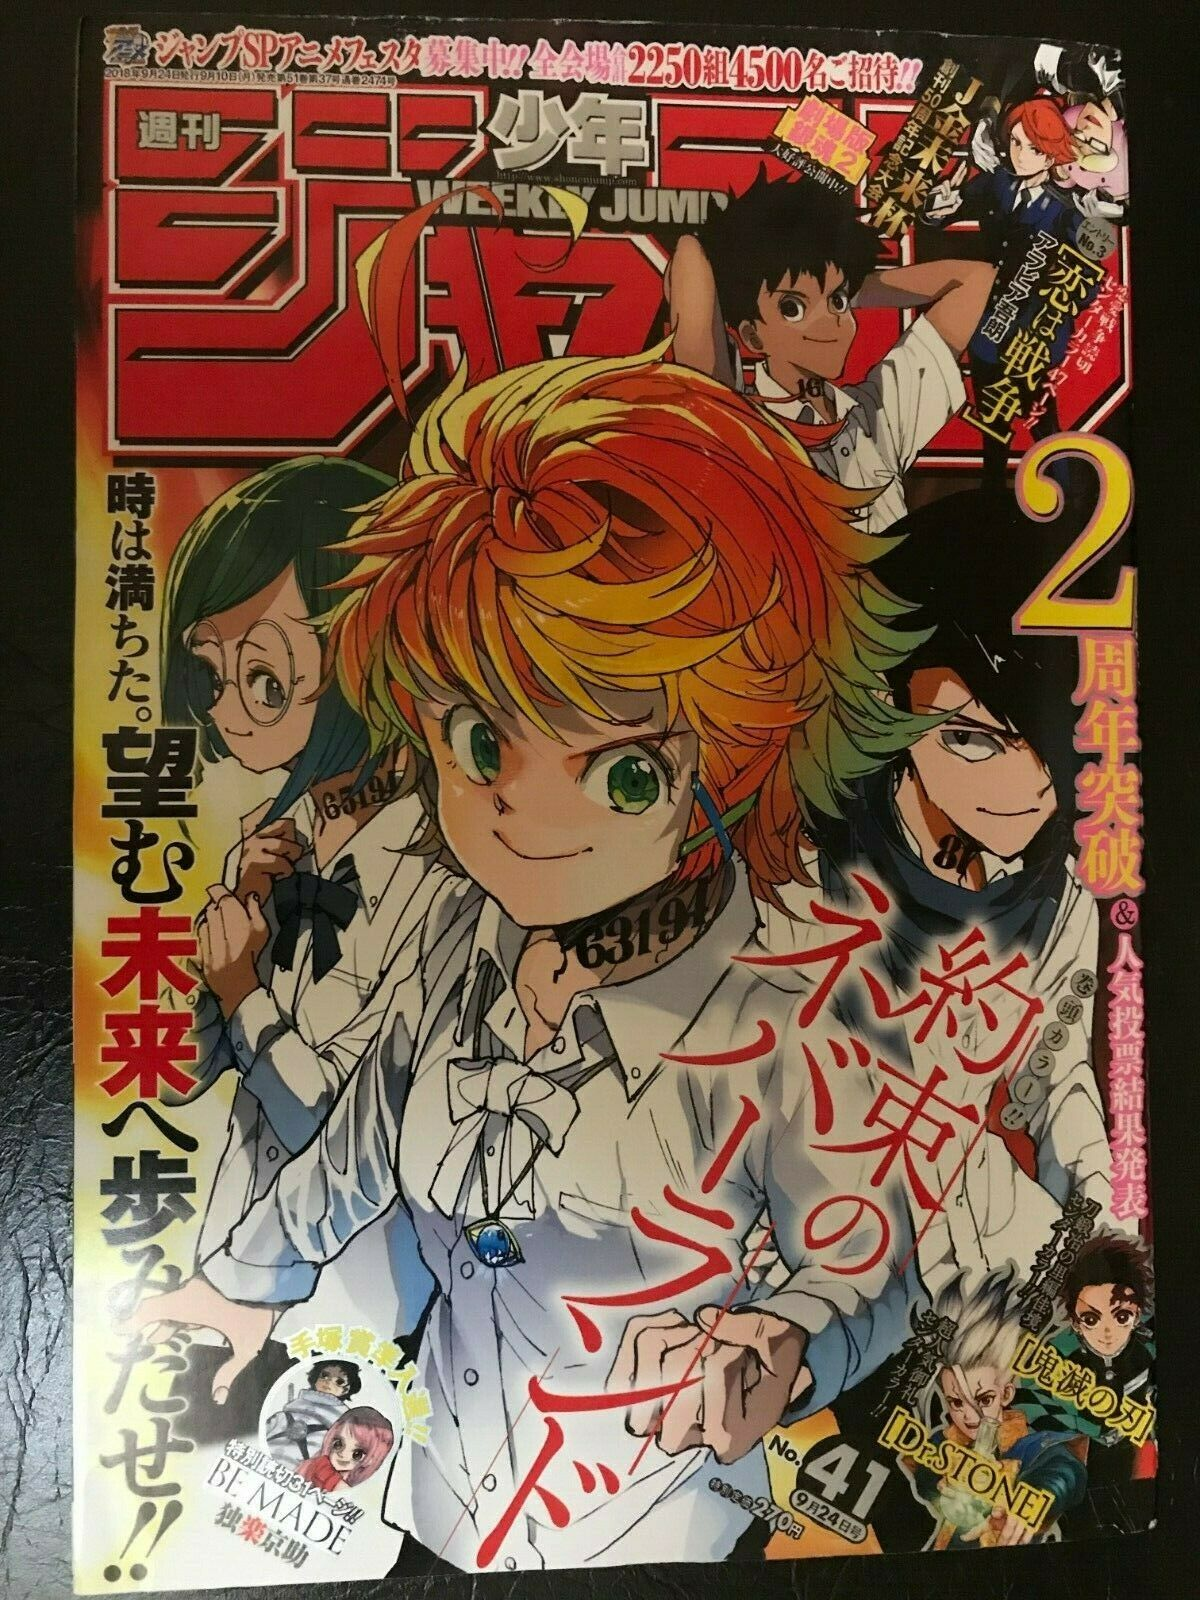 Weekly Shonen Jump Japan The Promised Neverland Cover No 41 2018 Manga Magazine For Sale Online